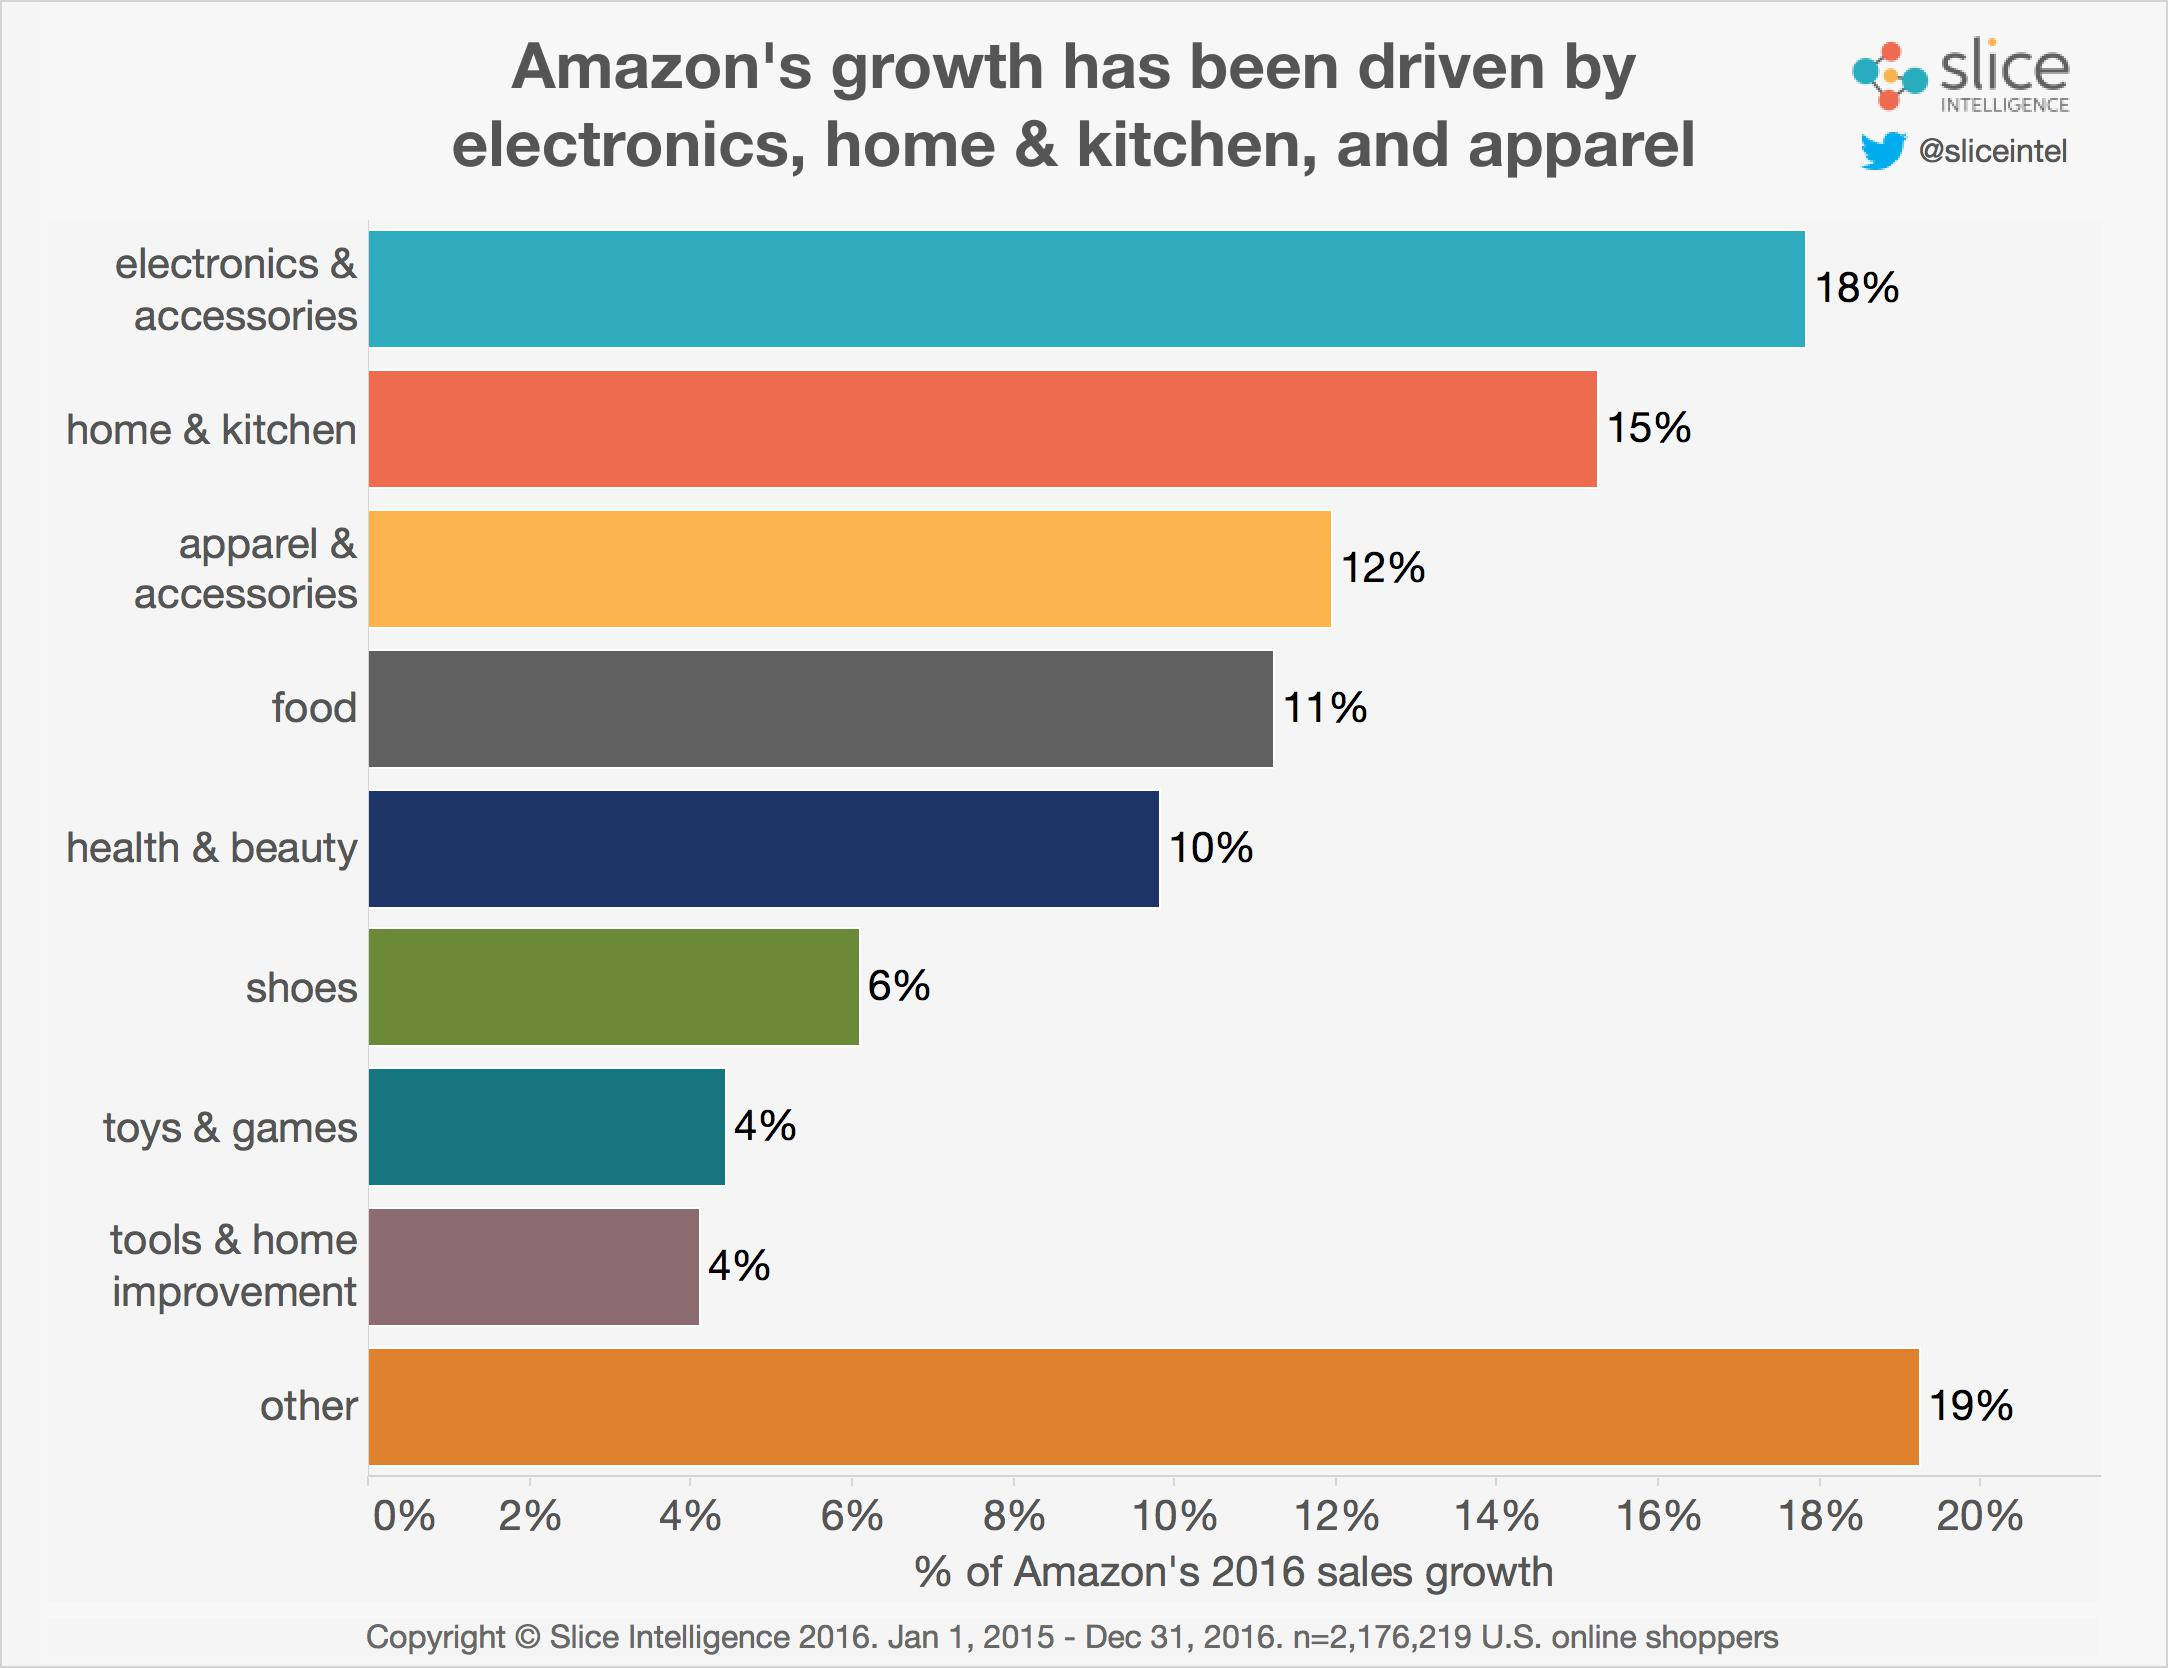 Sources of Amazon Growth